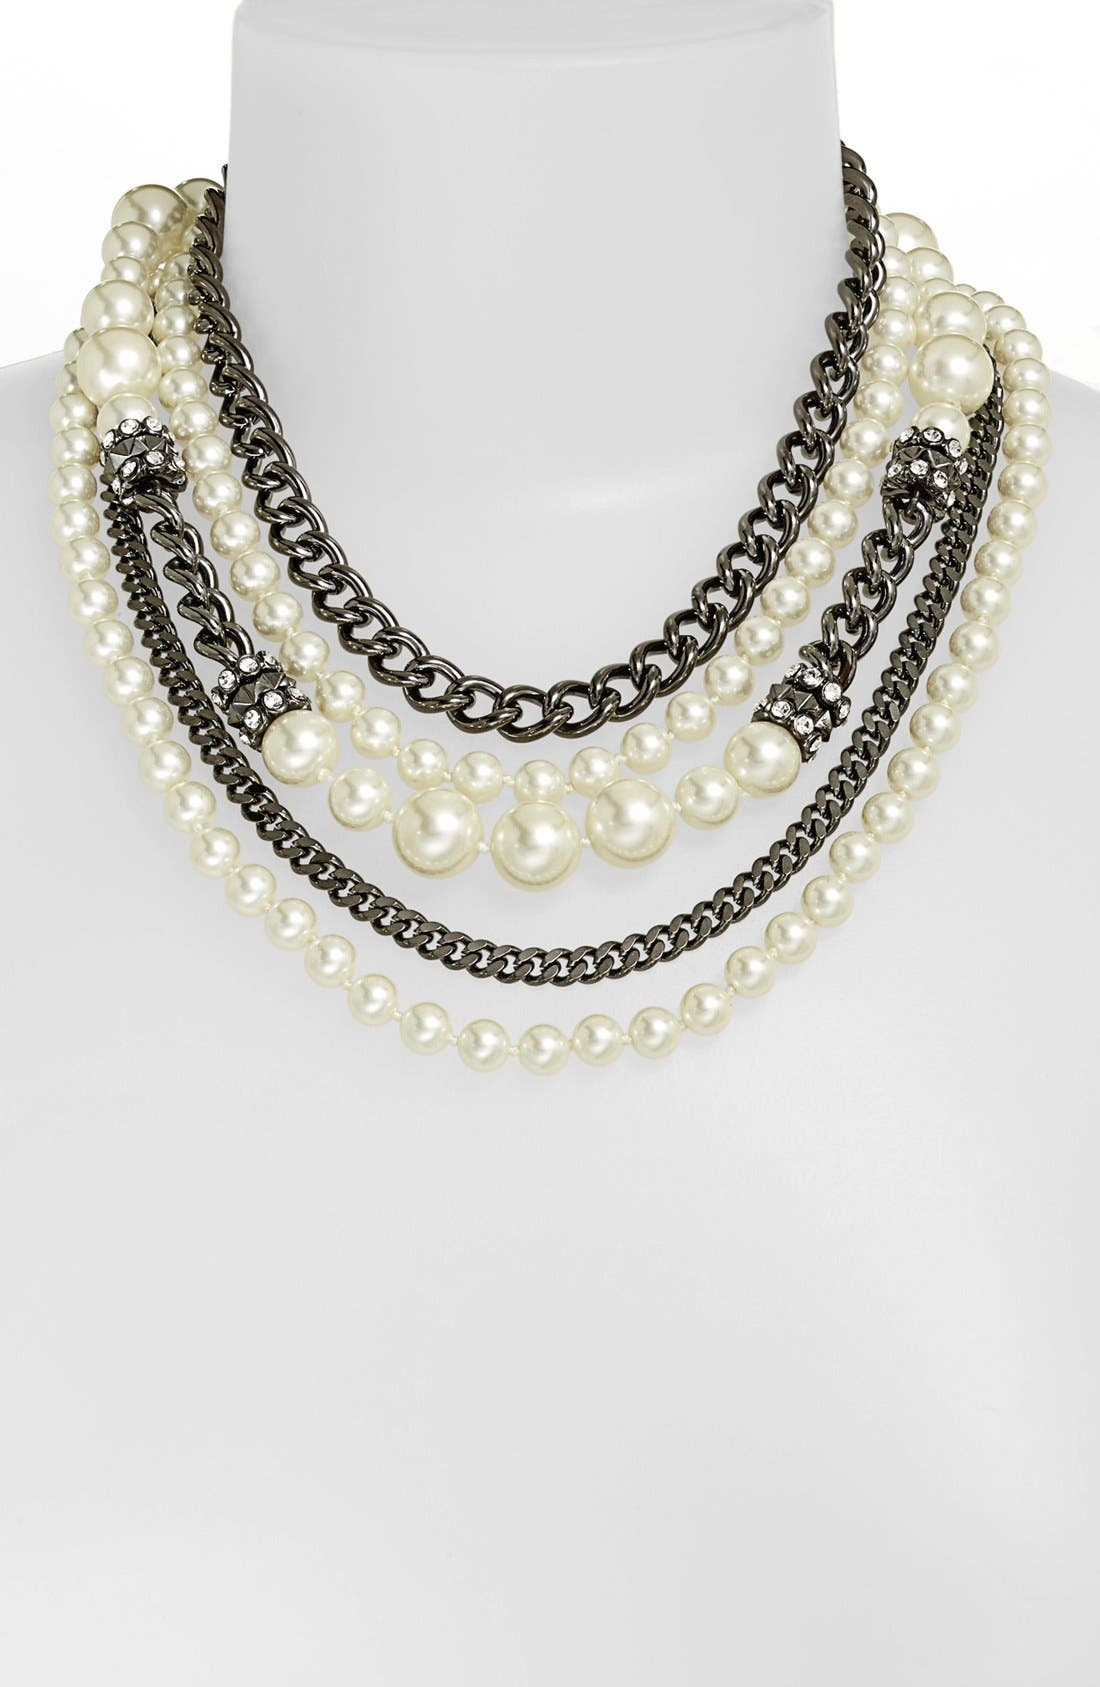 Main Image - Givenchy Multistrand Necklace (Nordstrom Exclusive)